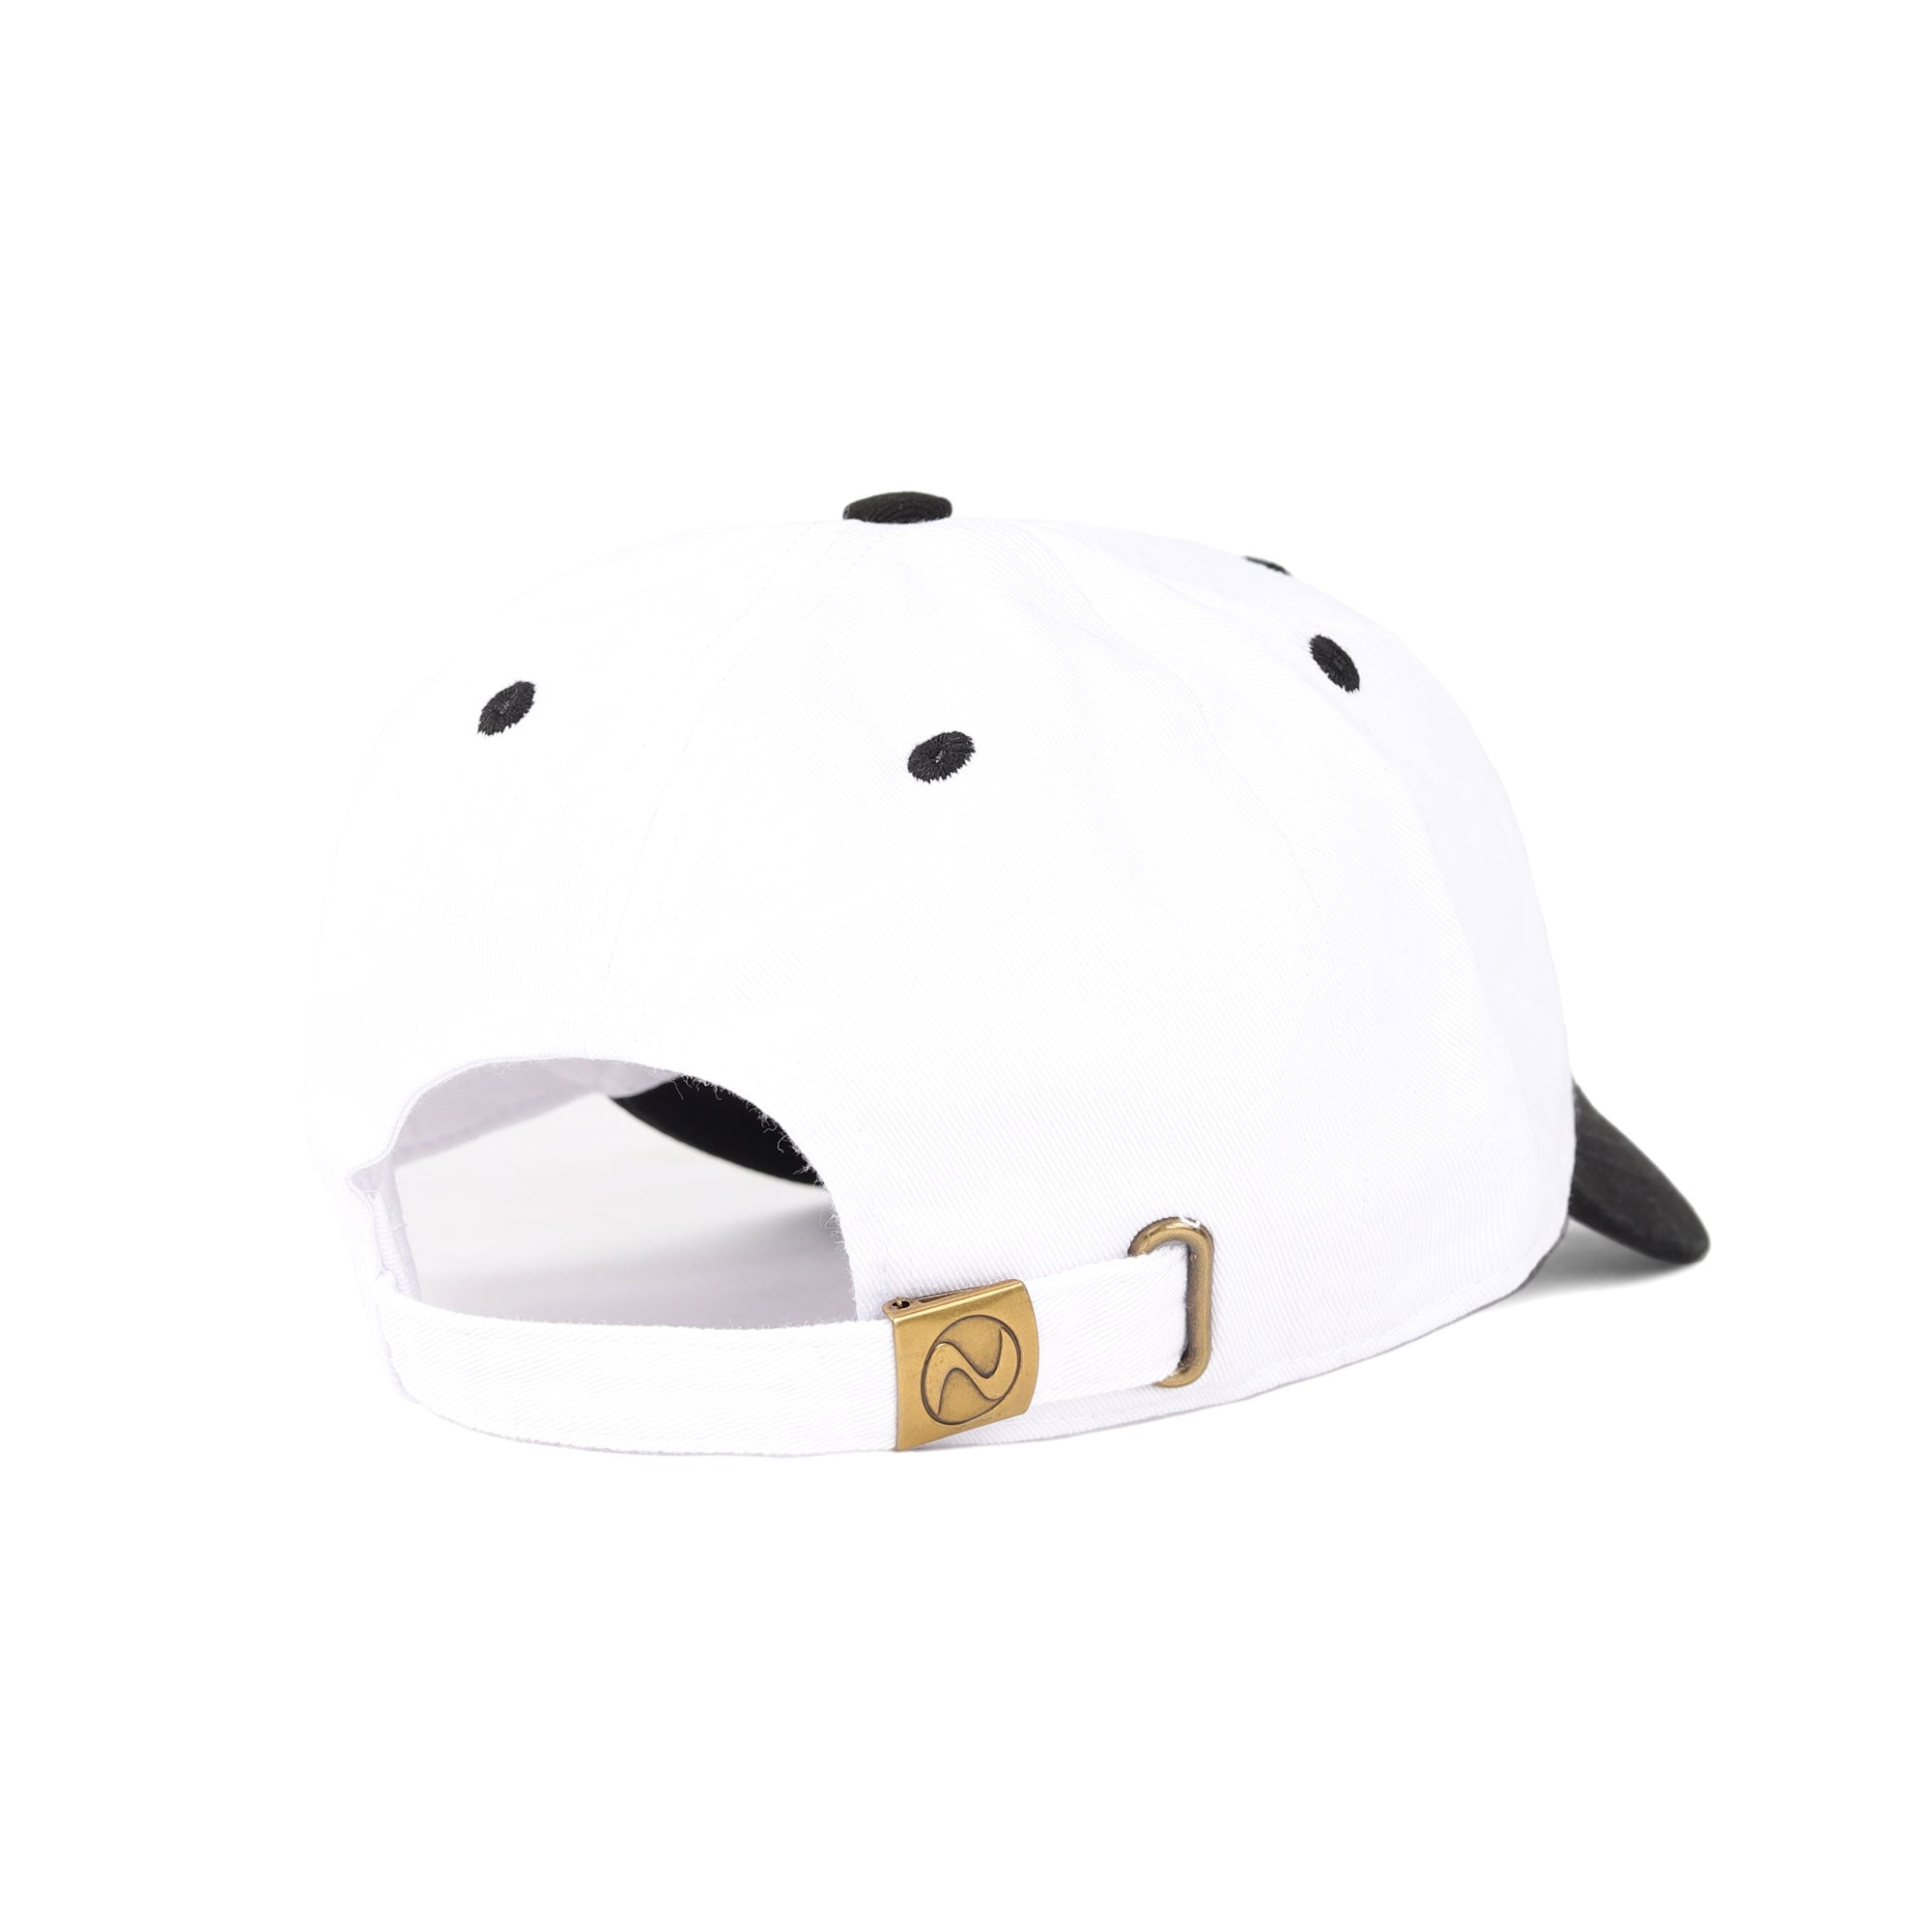 Beyond Standard 2 Cap Product Photo #3